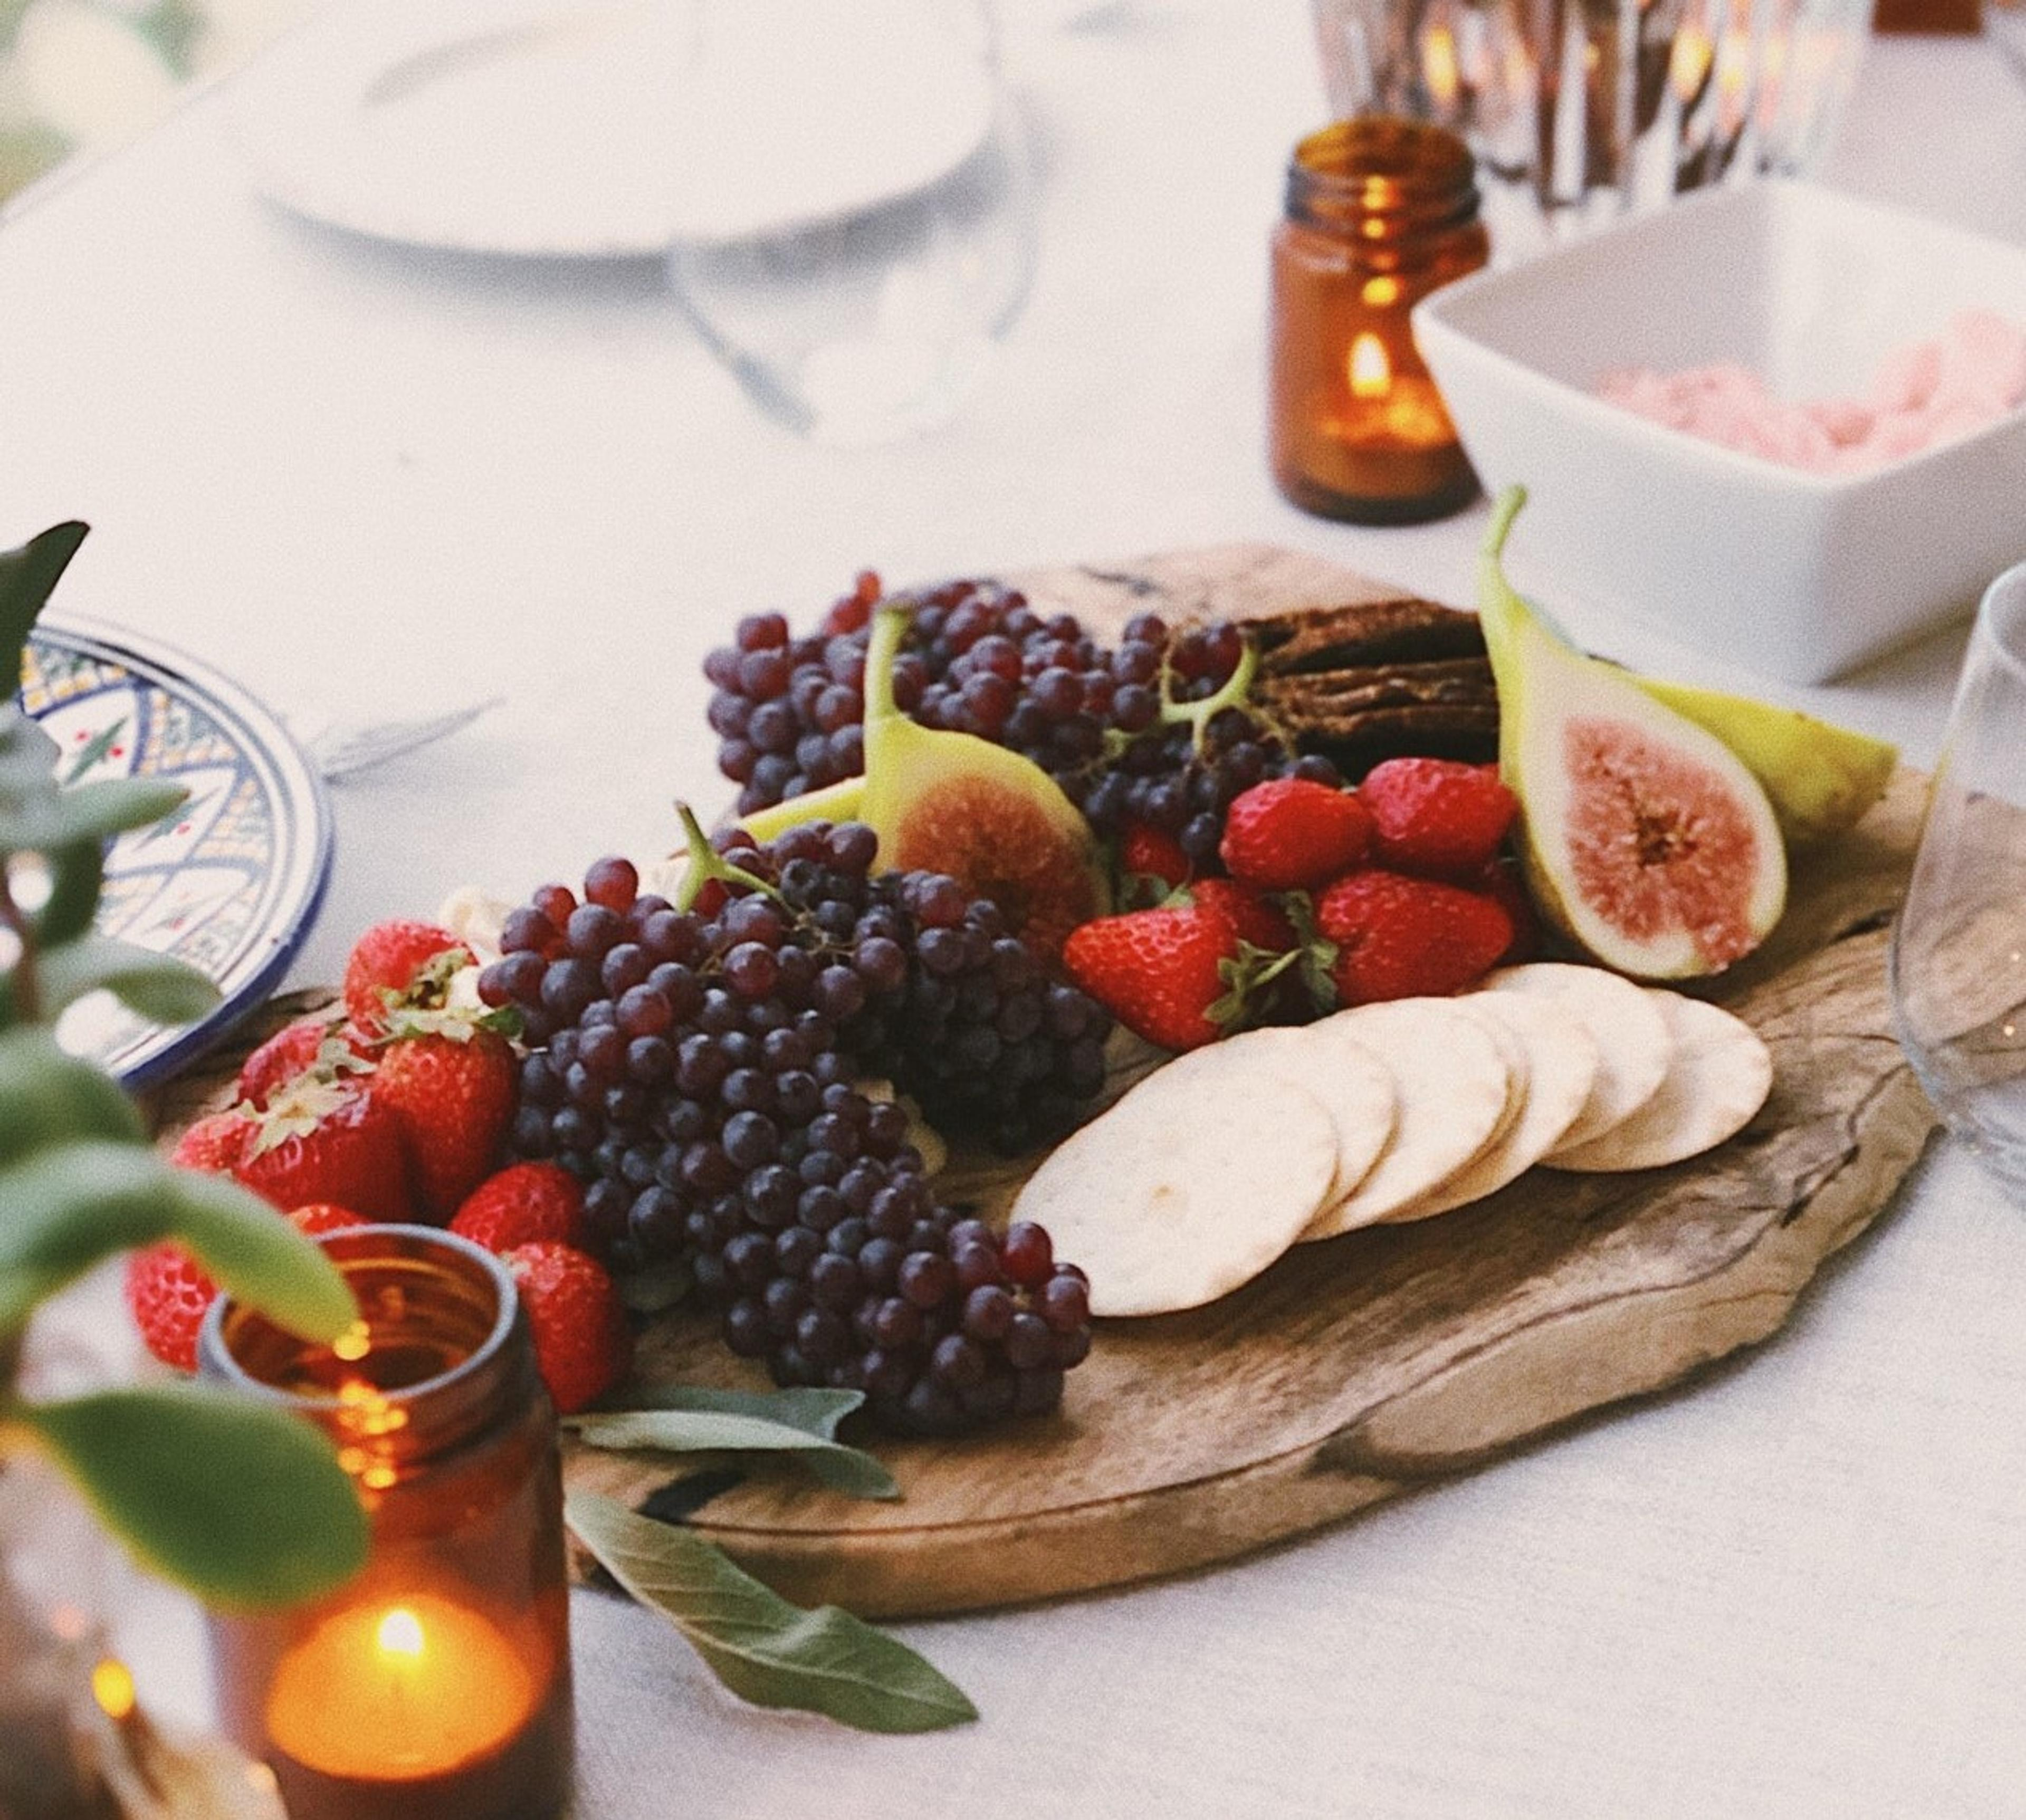 Grazing board with fruits and crackers